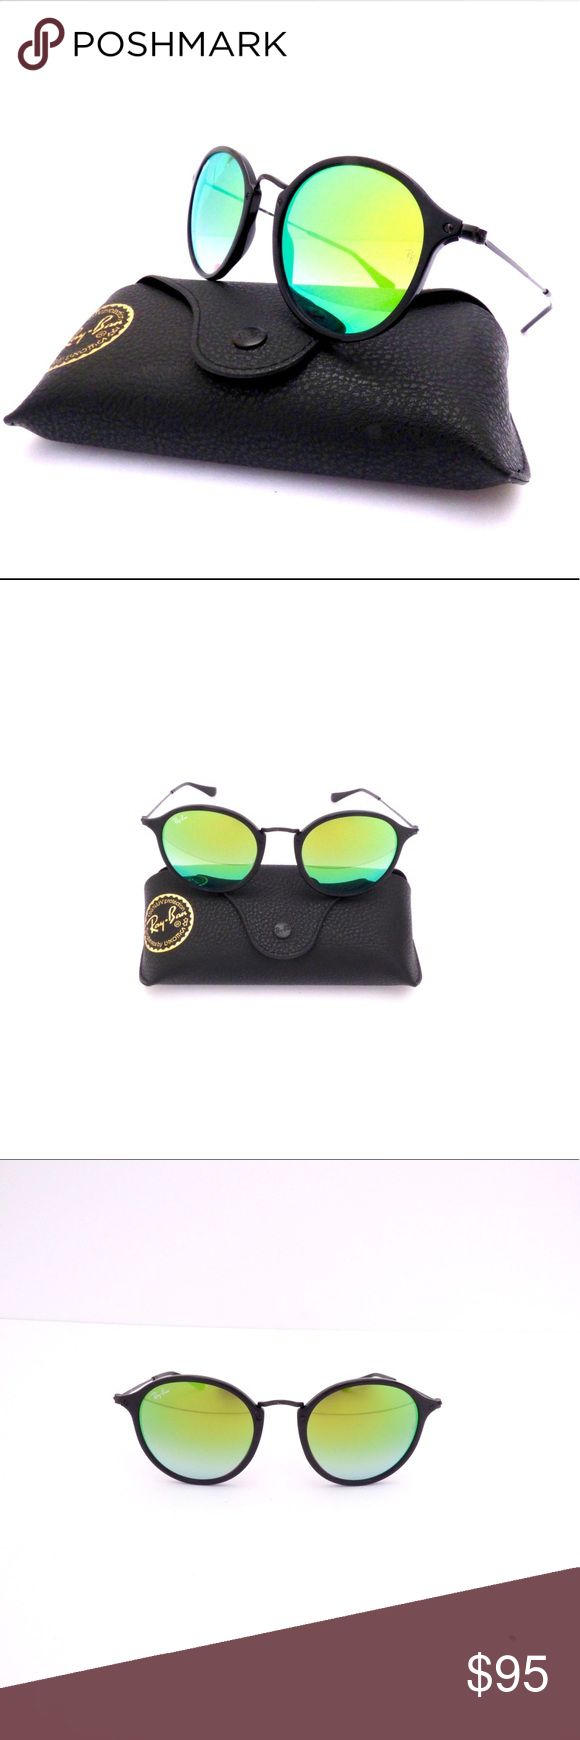 100% Authentic Ray-Ban Round Icon Black Sunglasses Ray-Ban Black Round Icon Sunglasses RB2447 901/4J 52/21/145 3N  These Round Icon sunglasses with a thin Black Frame and Green Mirrored lenses are a must! A classic look for on trend style 100% Authentic. Made in Italy. Covered Ray-Ban Limited Lifetime Warranty.  Model:RB2447 901/4J Eye:52mm Bridge:21mm Temple:145mm Lens Tech:Anti-Reflection Lens Color:Green Mirrored Style:Round Frame color/Material:Black/Metal  Comes with Black Leather Case…